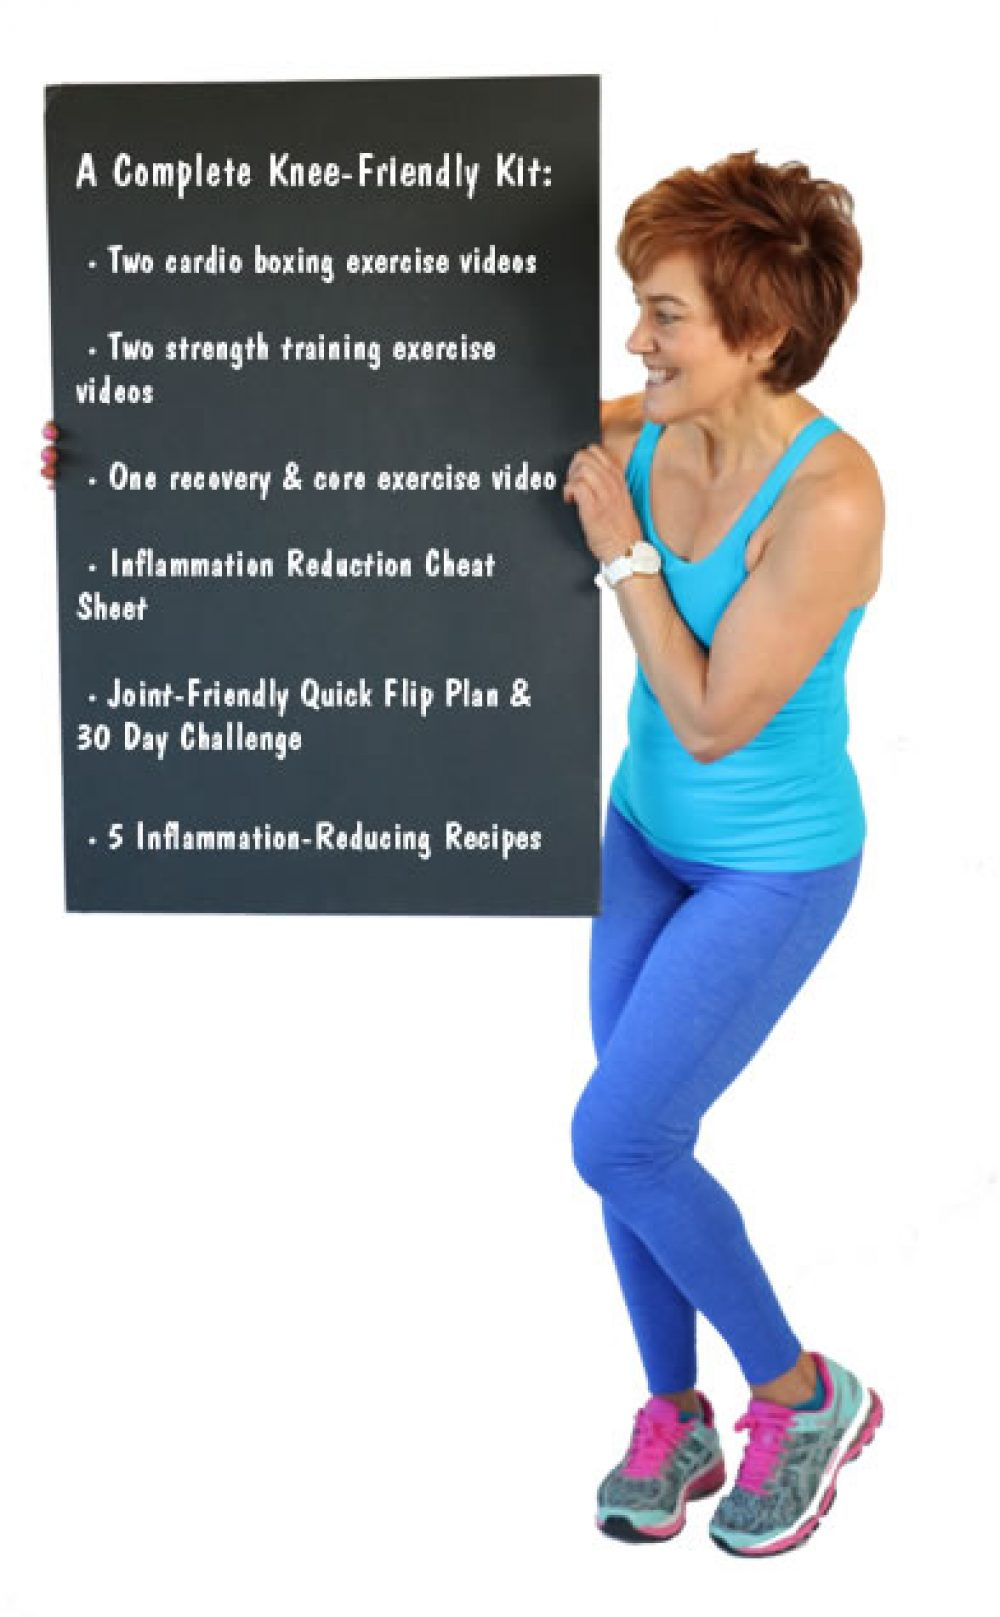 keep your knees healthy! Workouts safe for knees